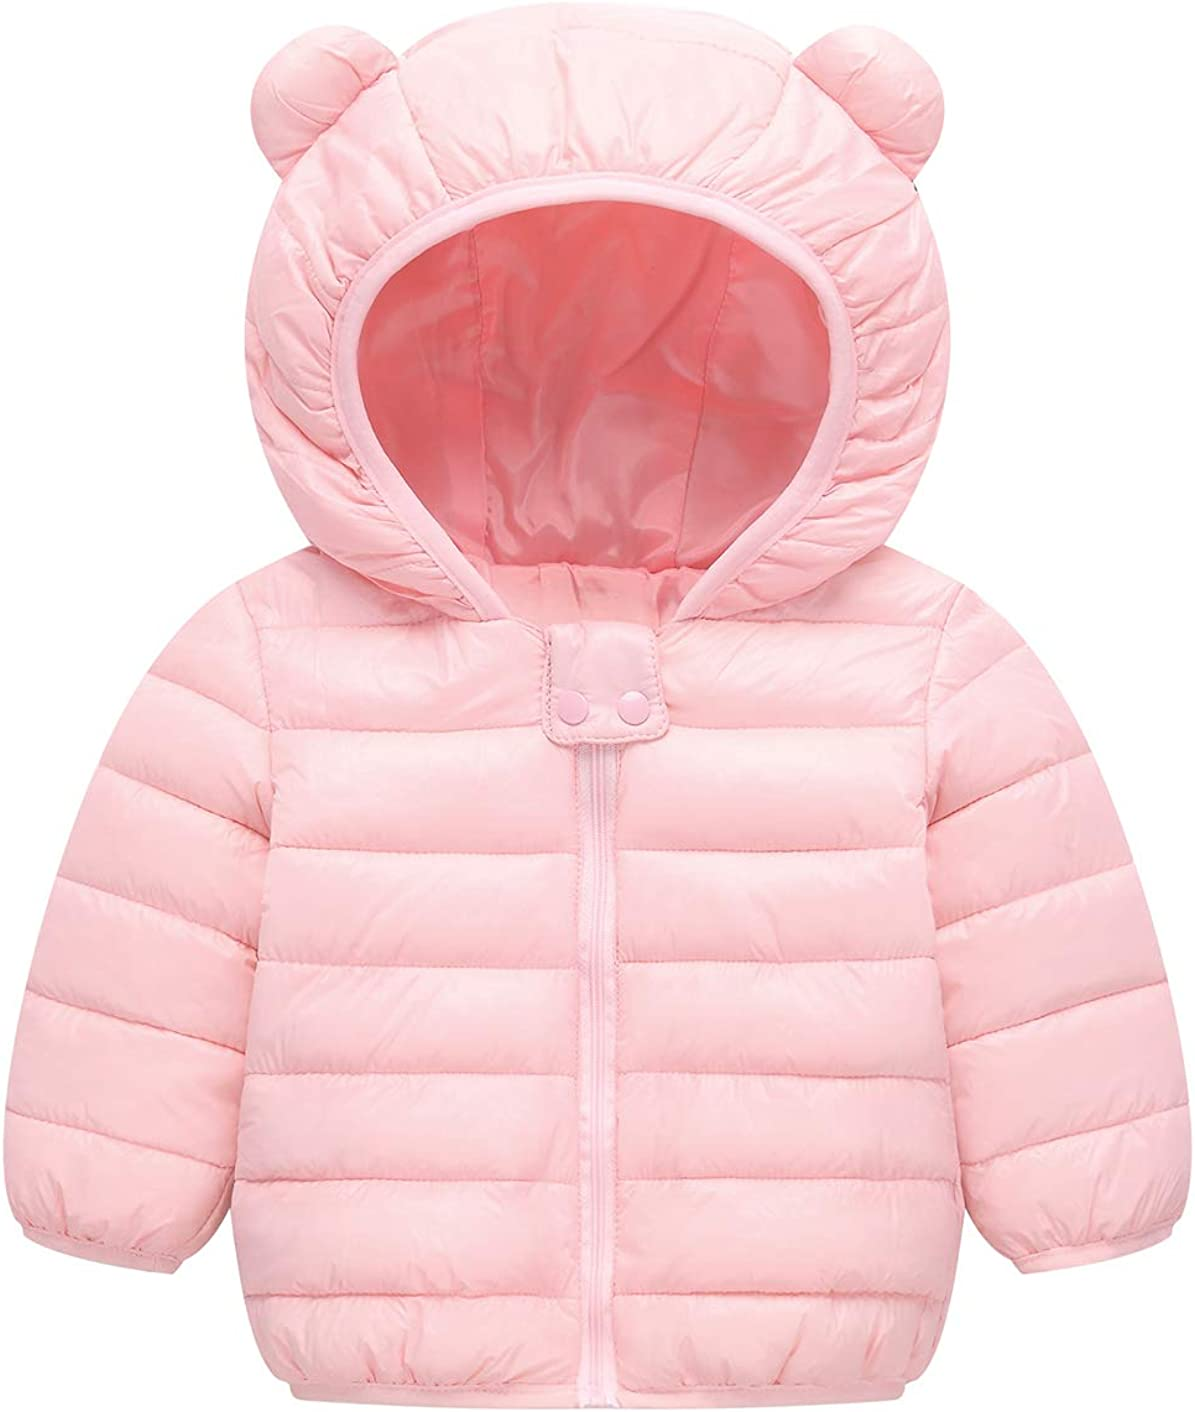 Baby Boys Girls Toddler Kids Winter Coats with Ears Hoods Padded Puffer Jacket